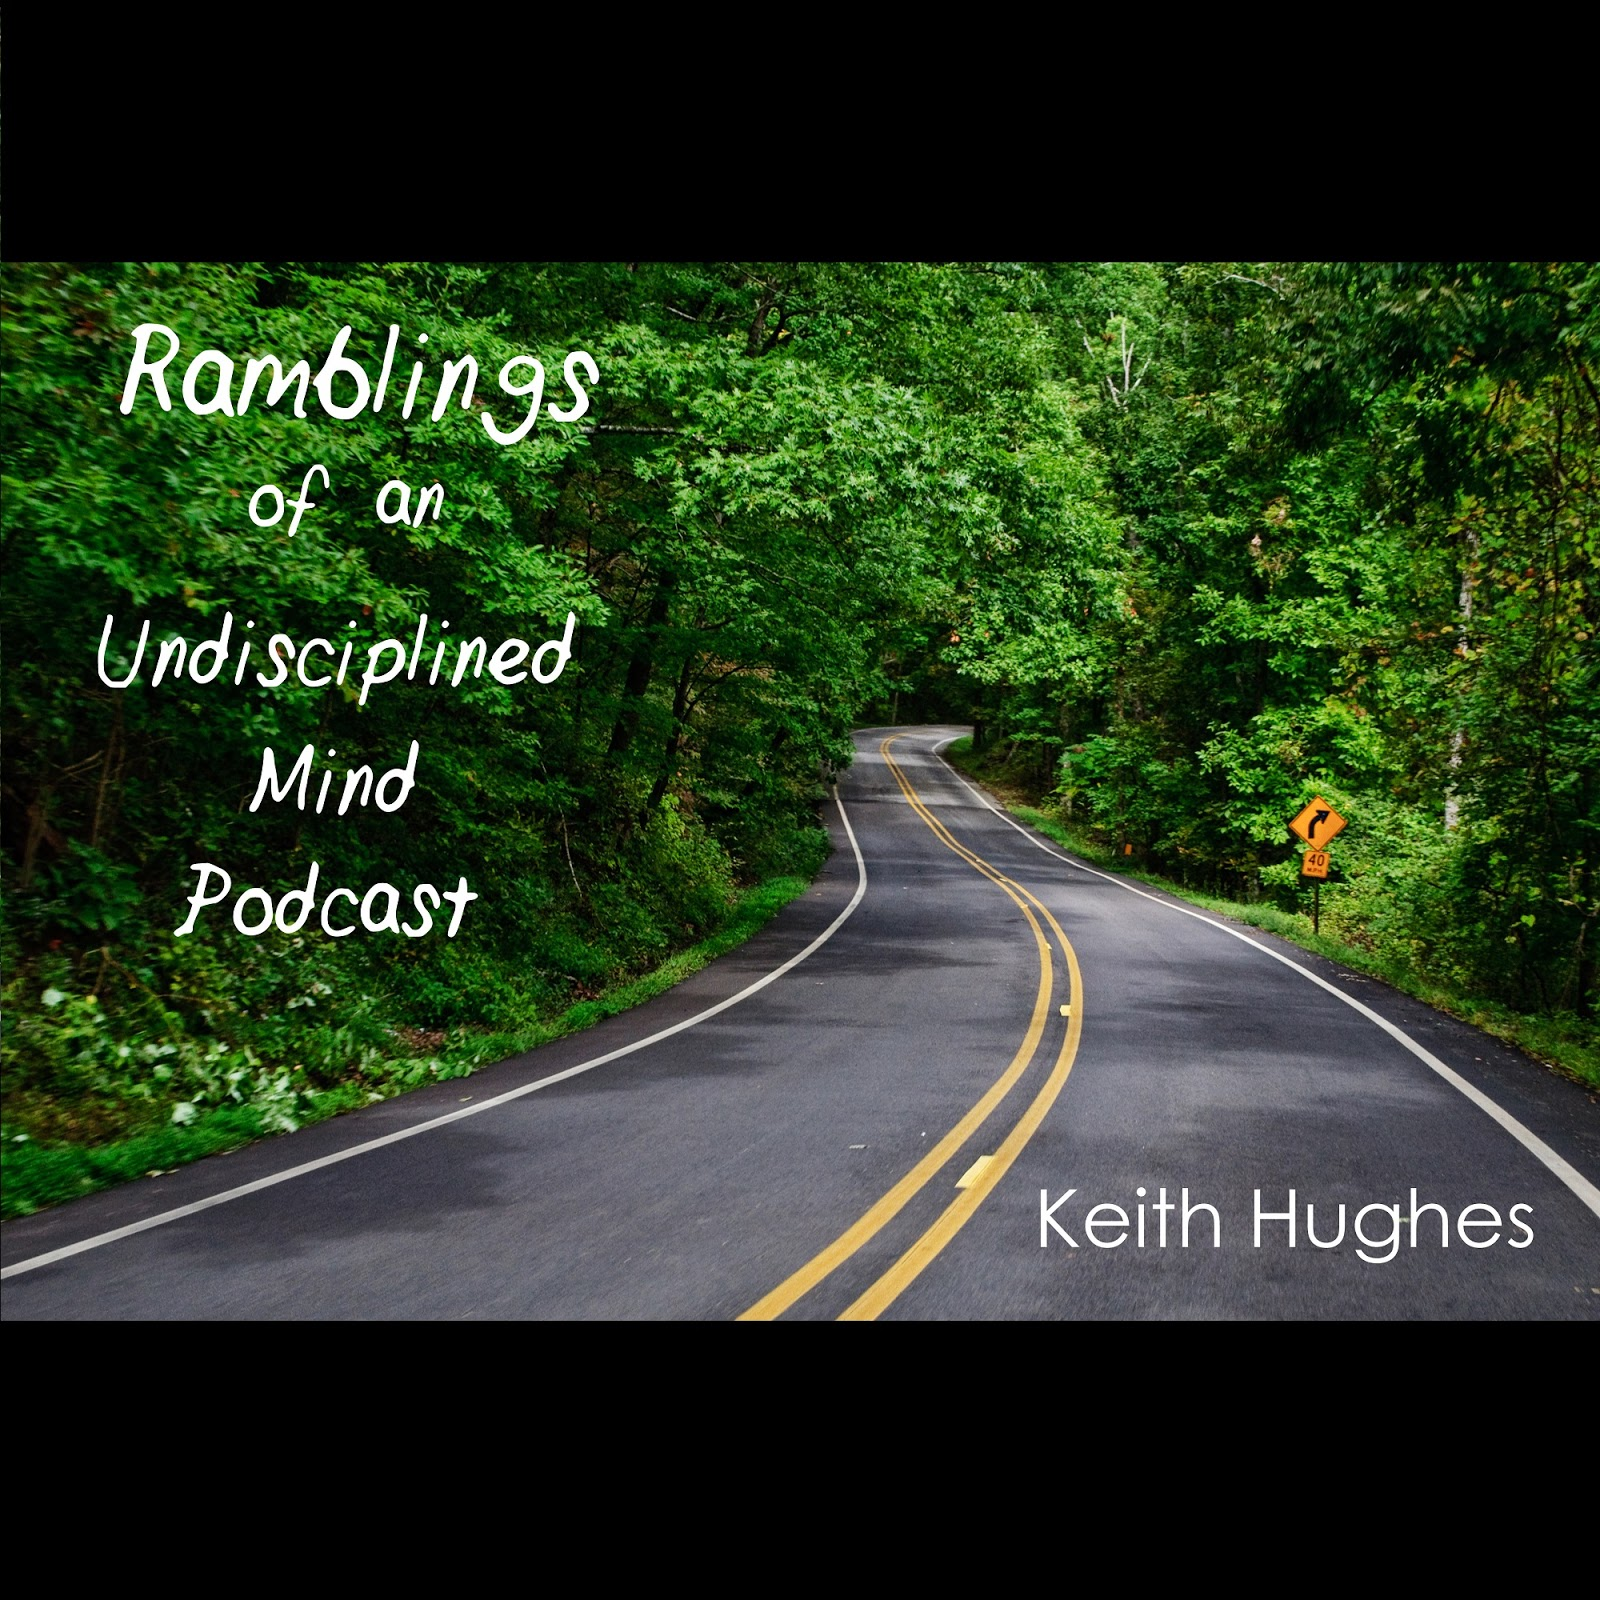 Ramblings of an Undiscliplined Mind Podcast